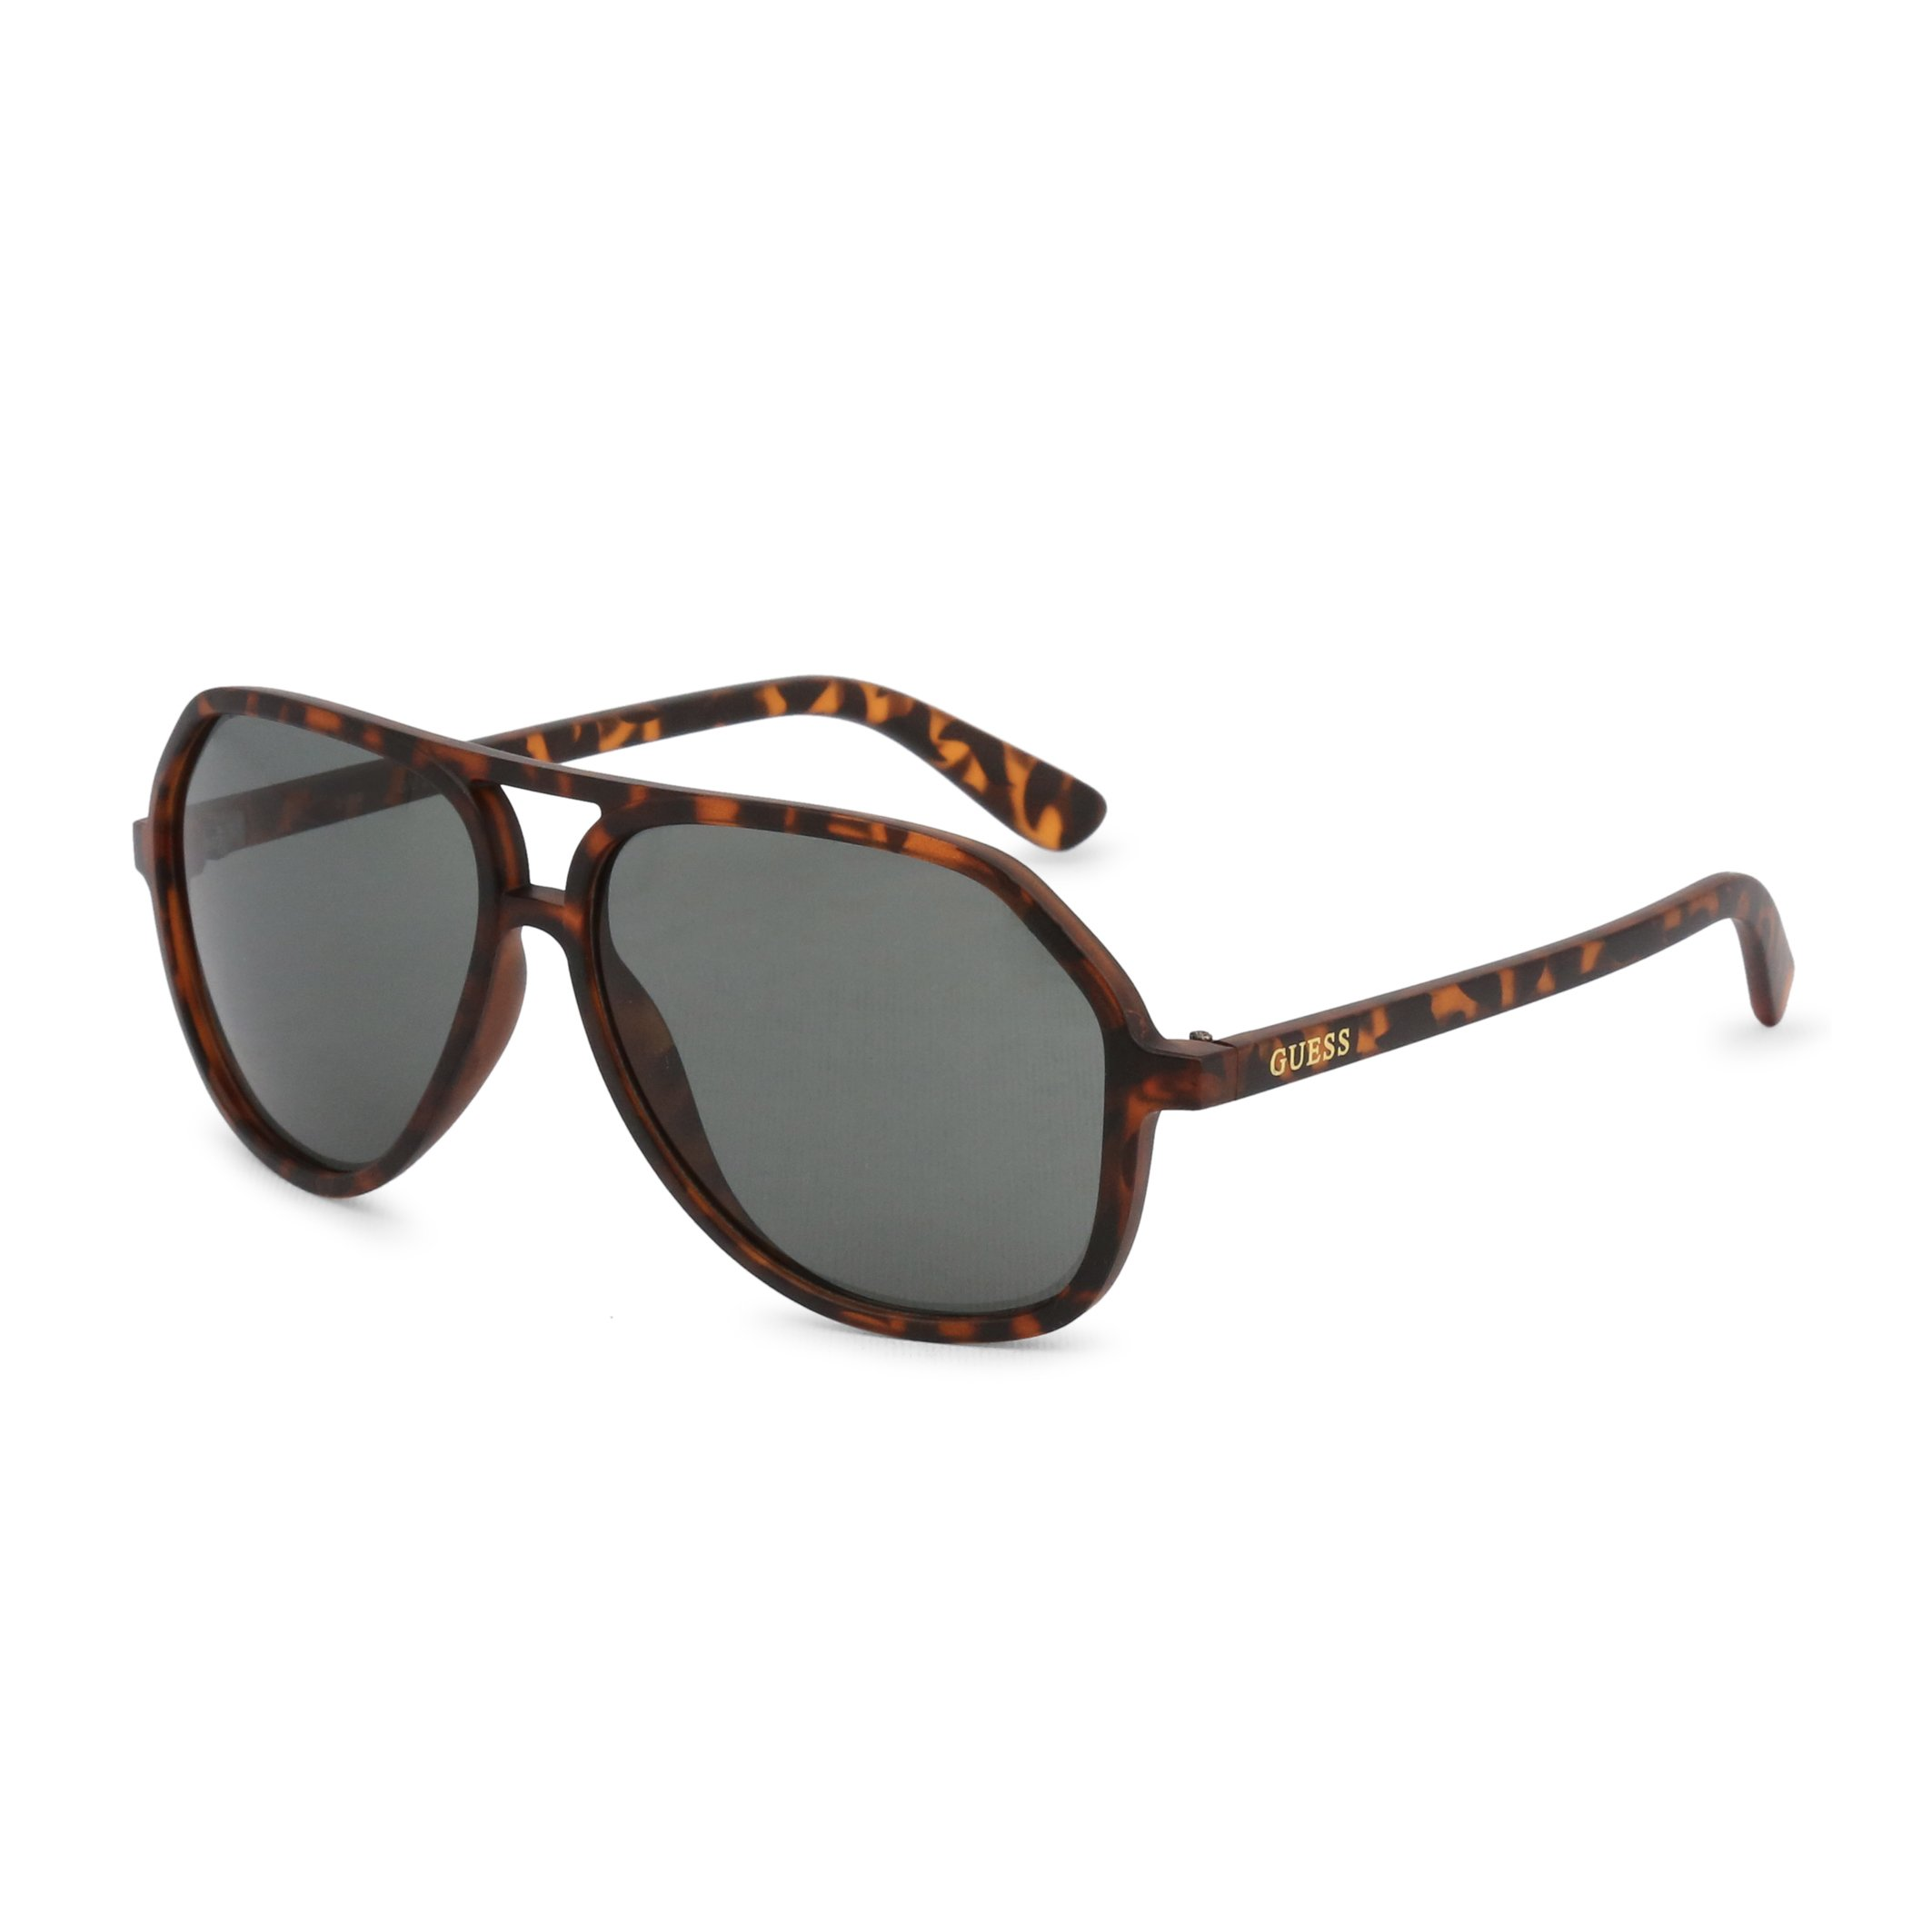 Guess Unisex Sunglasses Brown GF0217 - brown NOSIZE